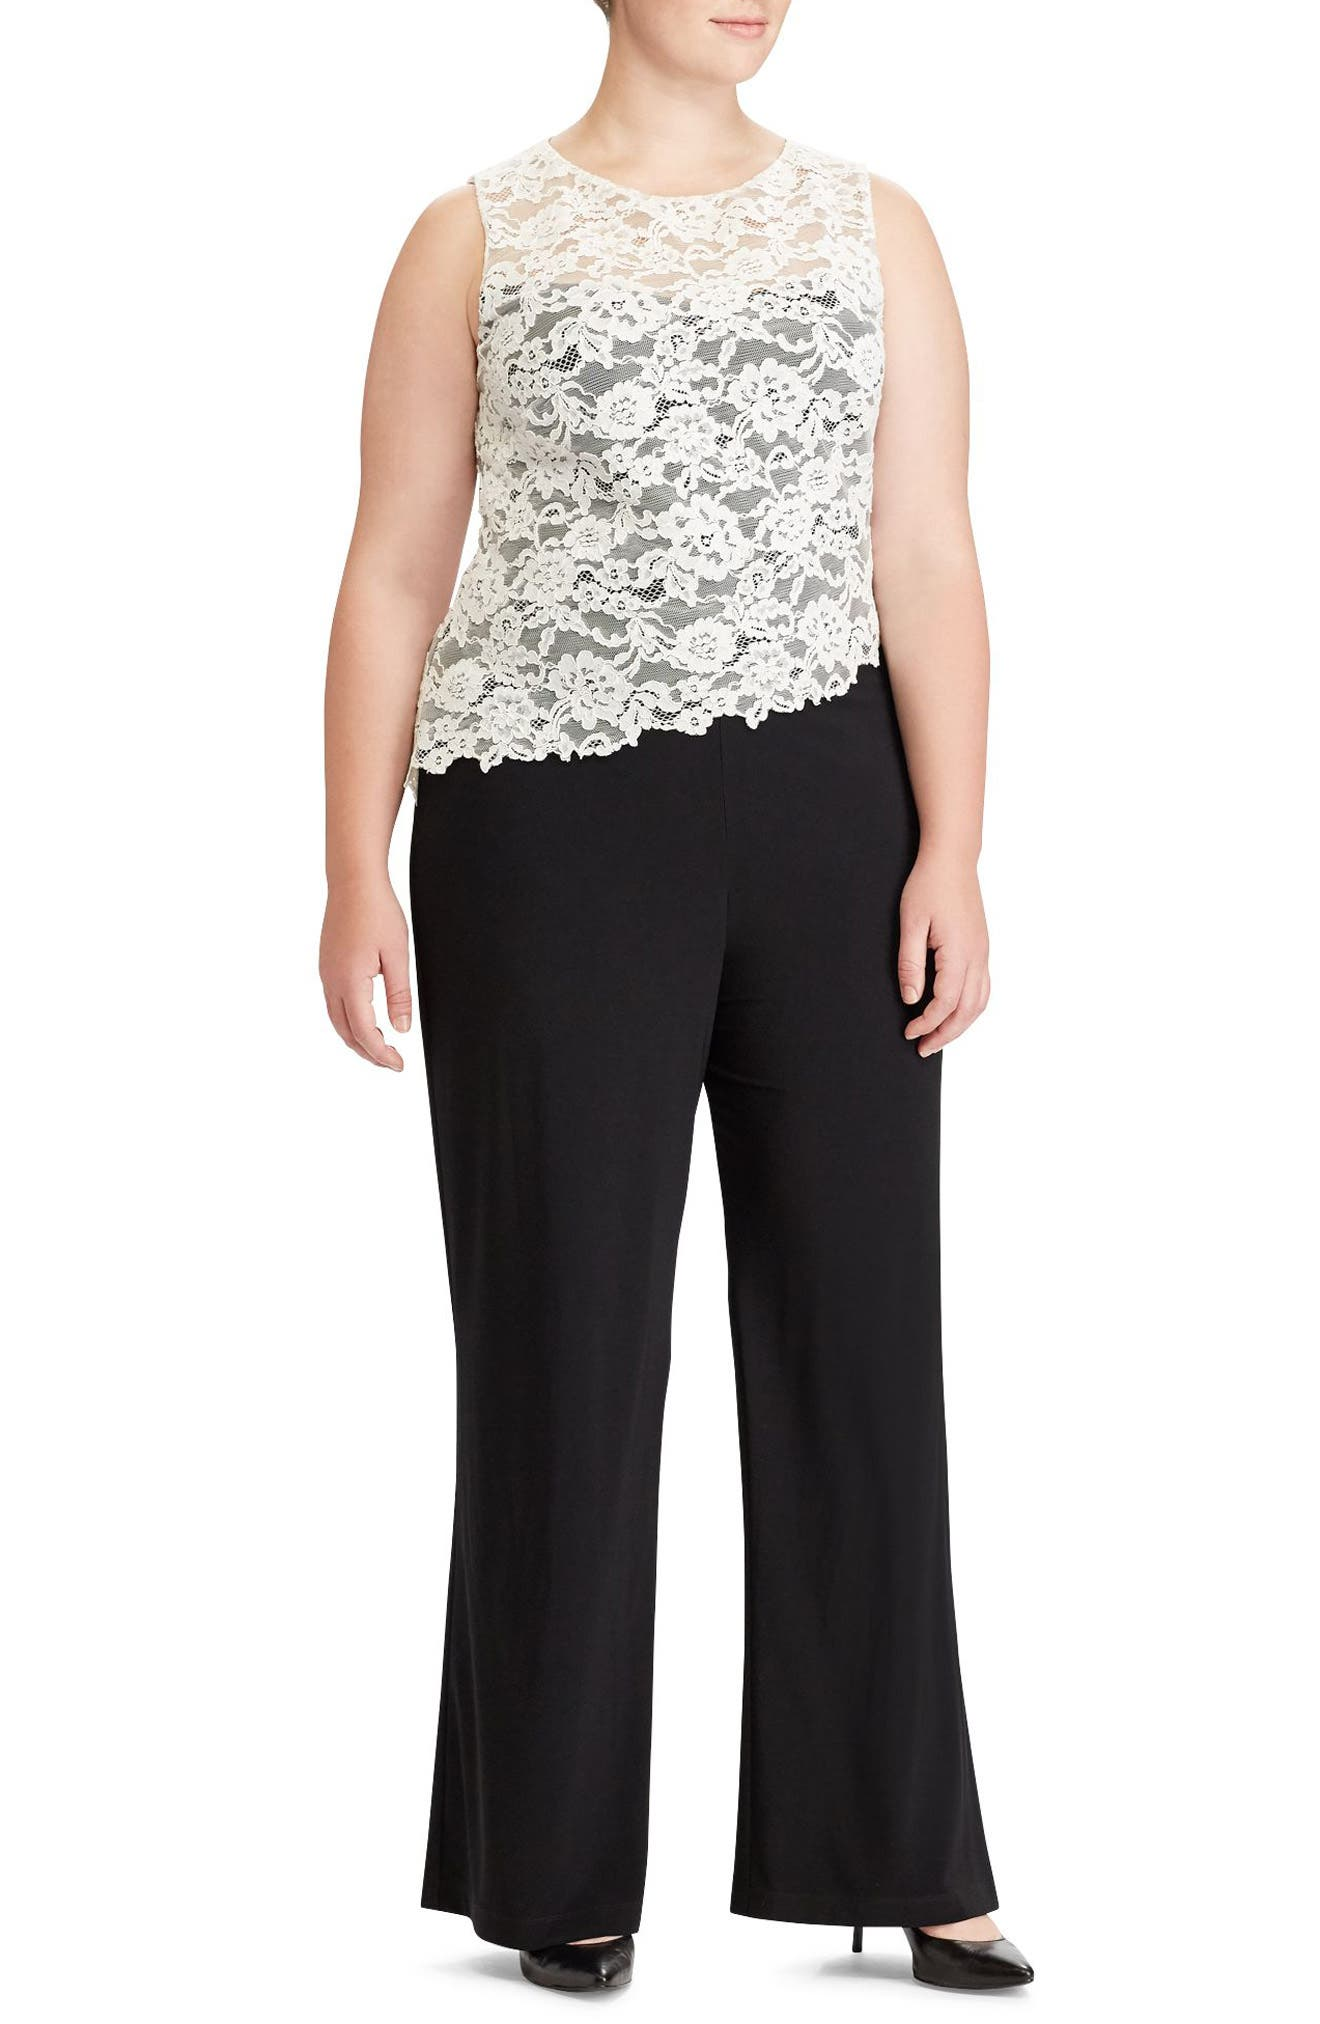 Zakiya Lacy Jumpsuit,                         Main,                         color, Black/ Lauren White/ Wheat